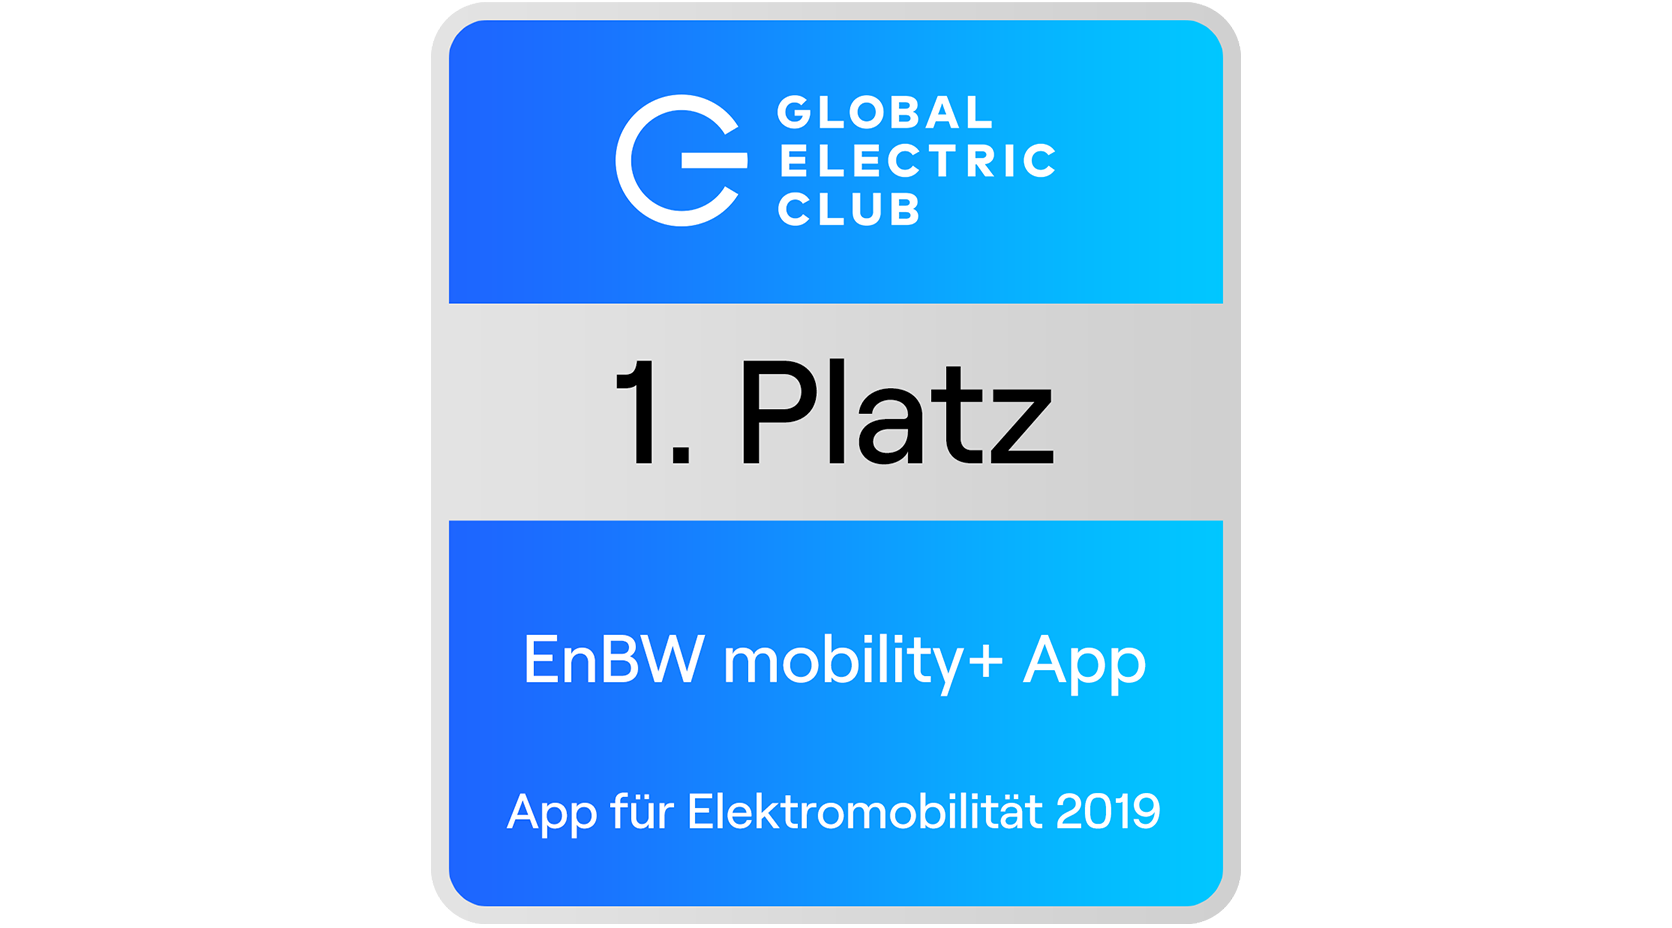 EnBW Global Electric Club Award App für Elektromobilität 2019